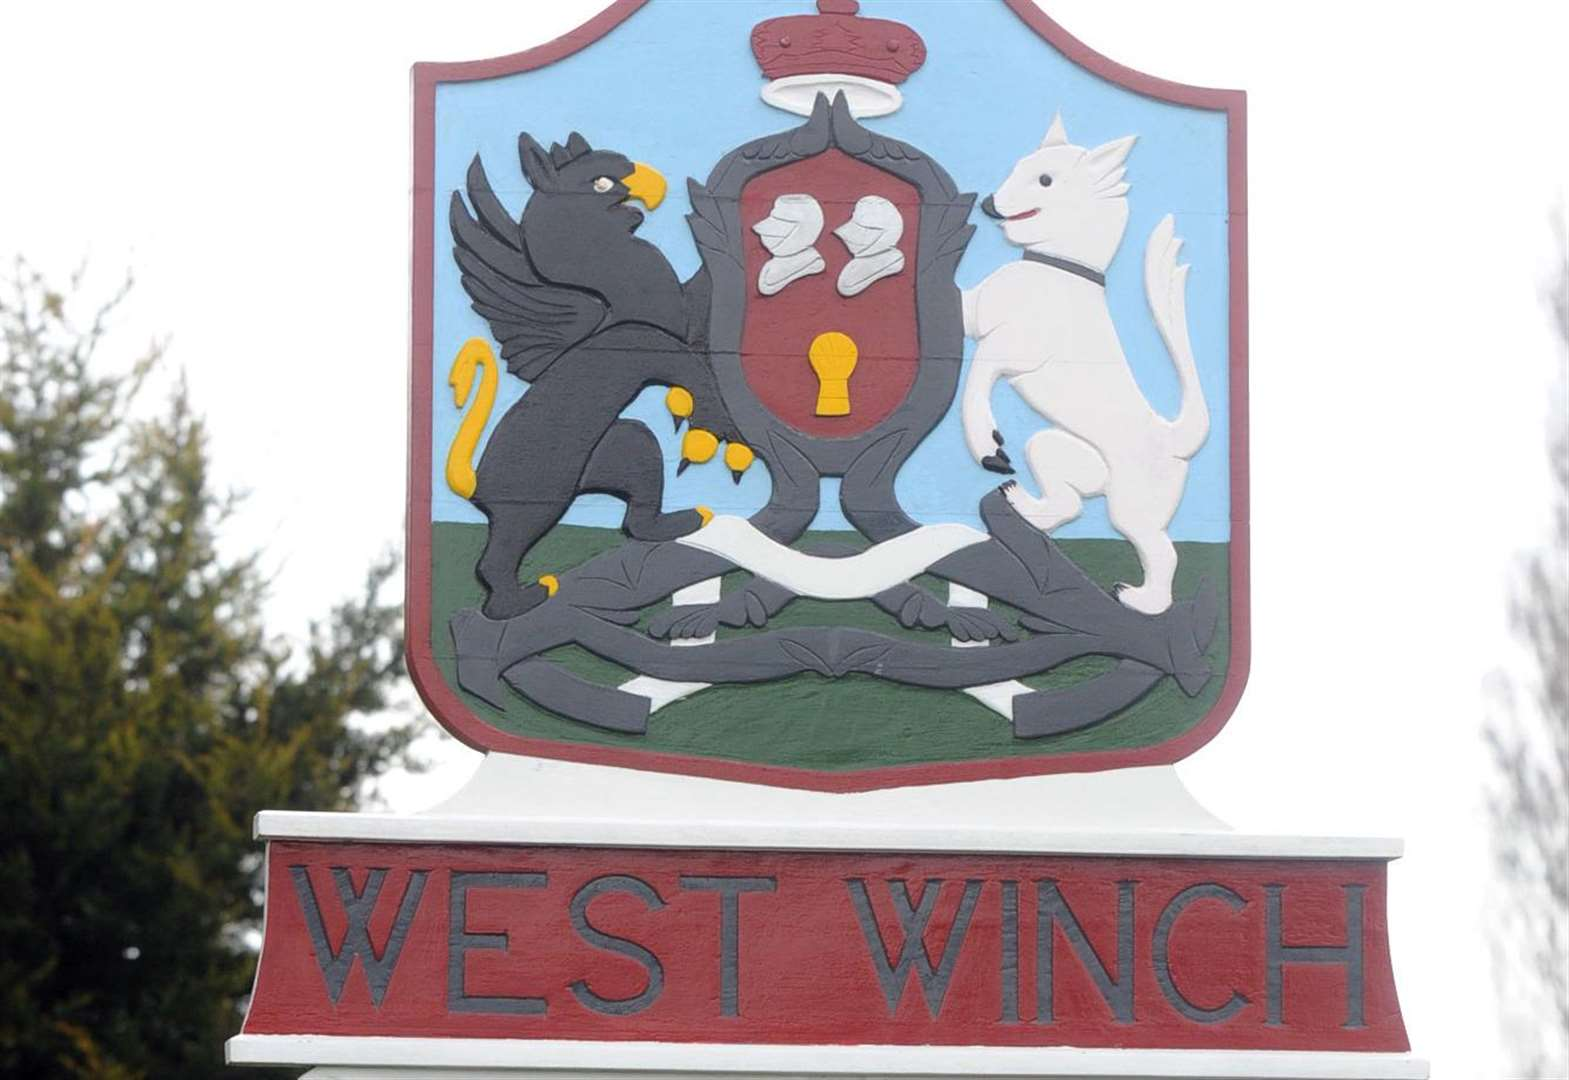 By-pass must come before homes are built in West Winch, county councillor urges